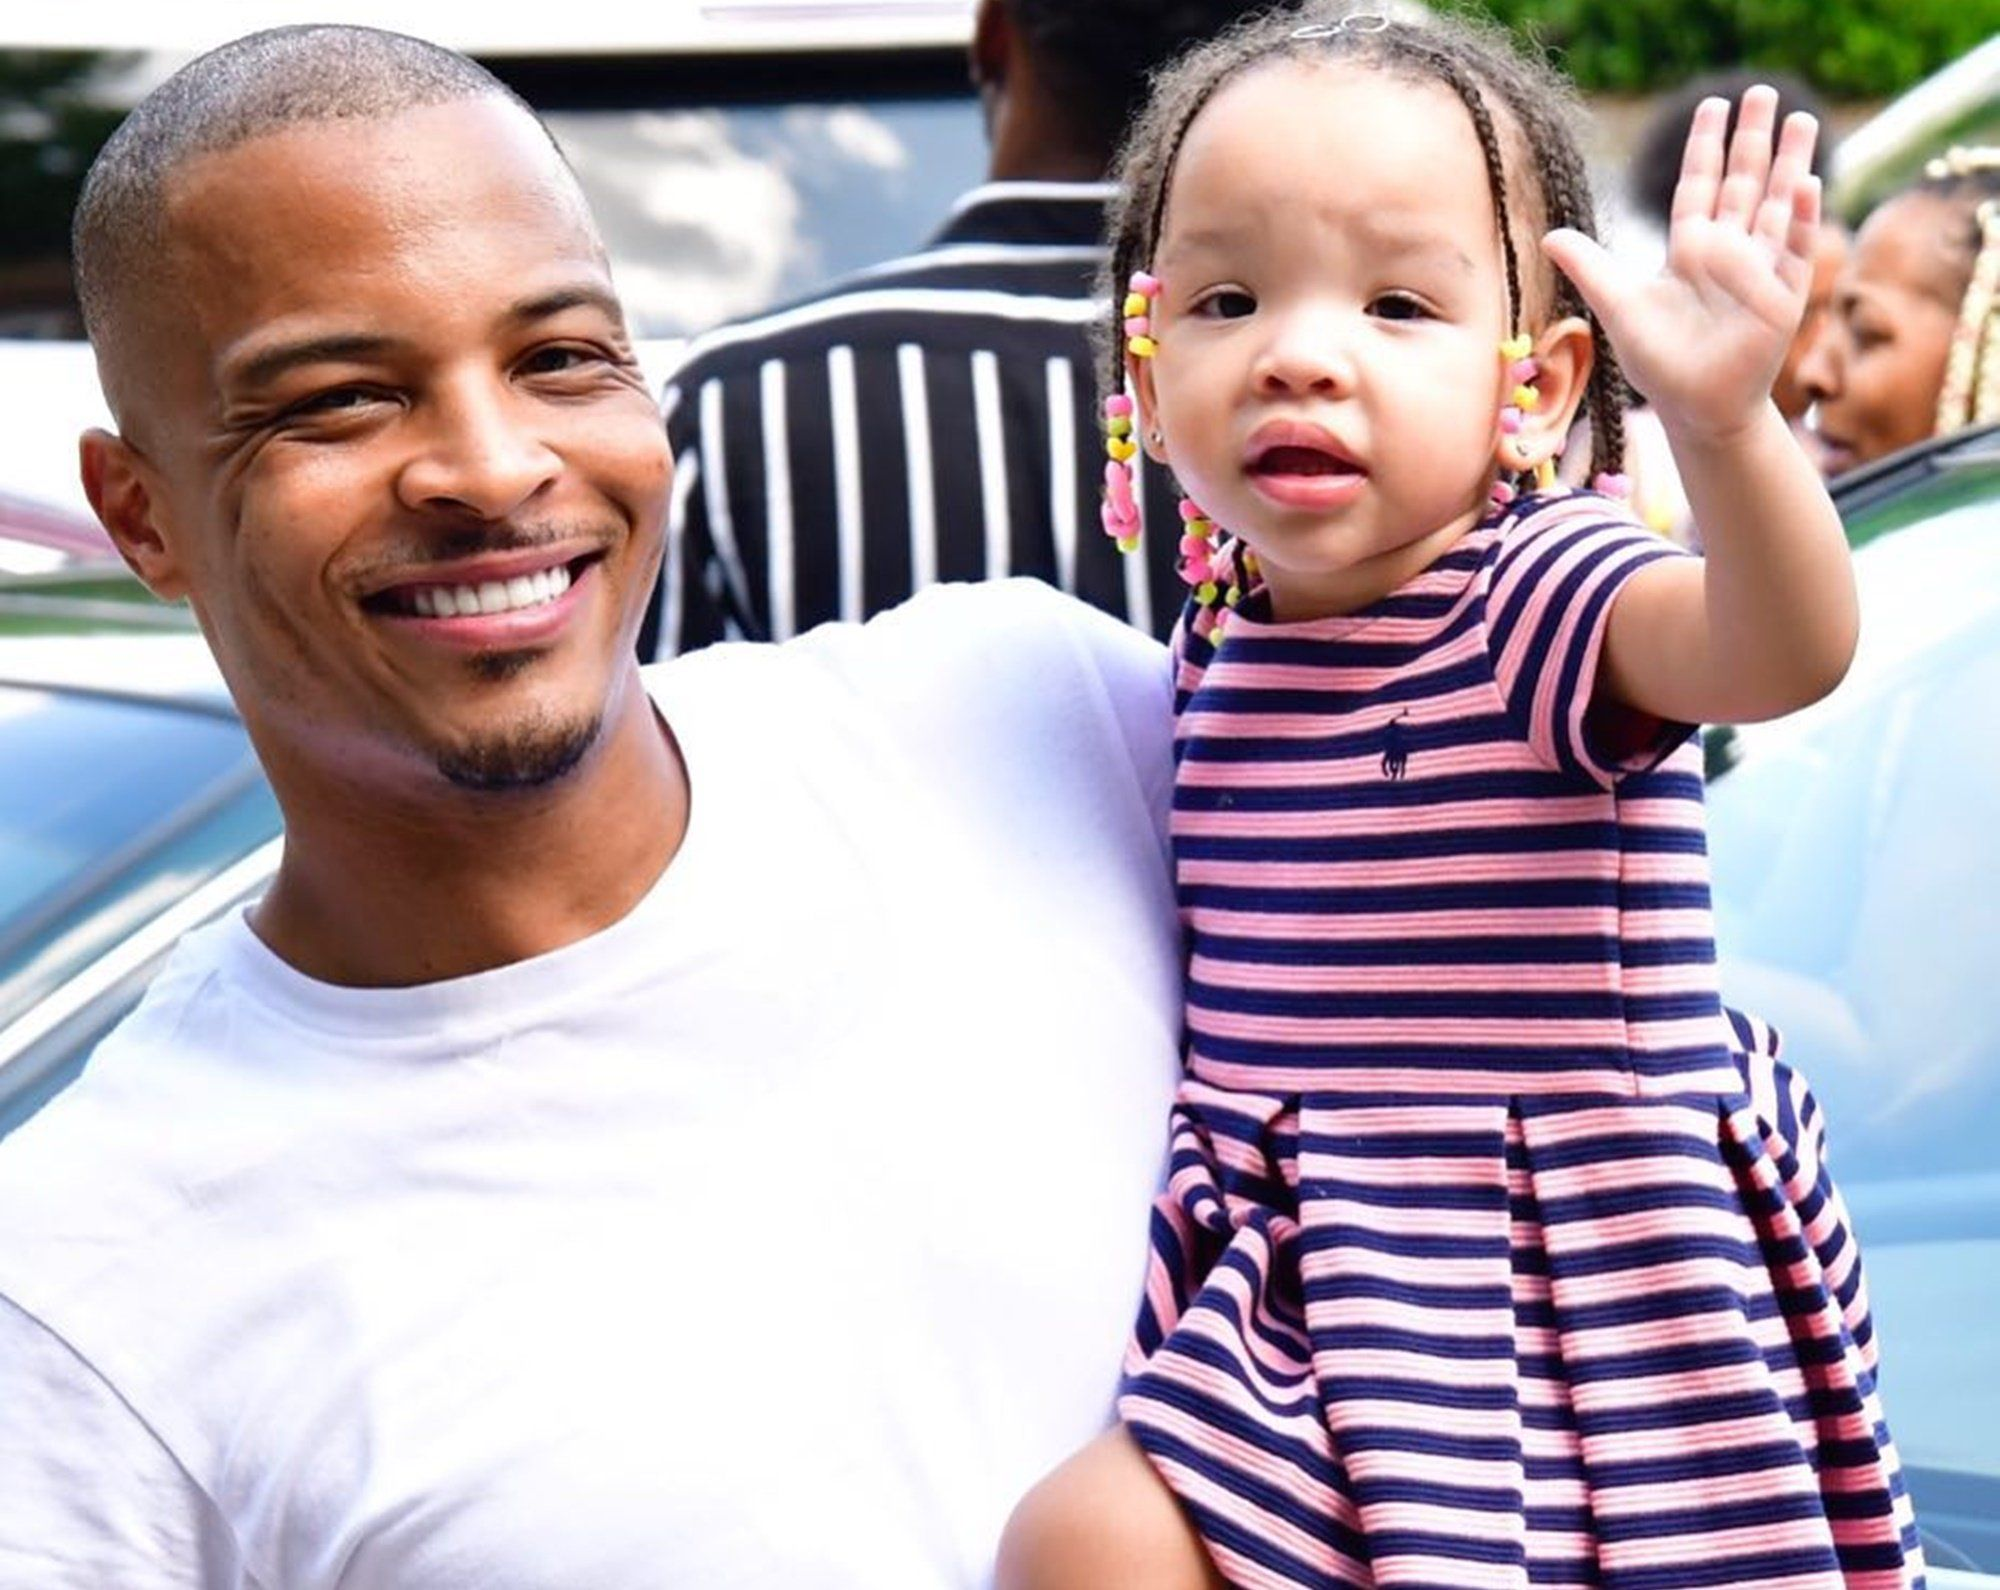 T.I. Proudly Poses With His Daughter, Heiress Harris